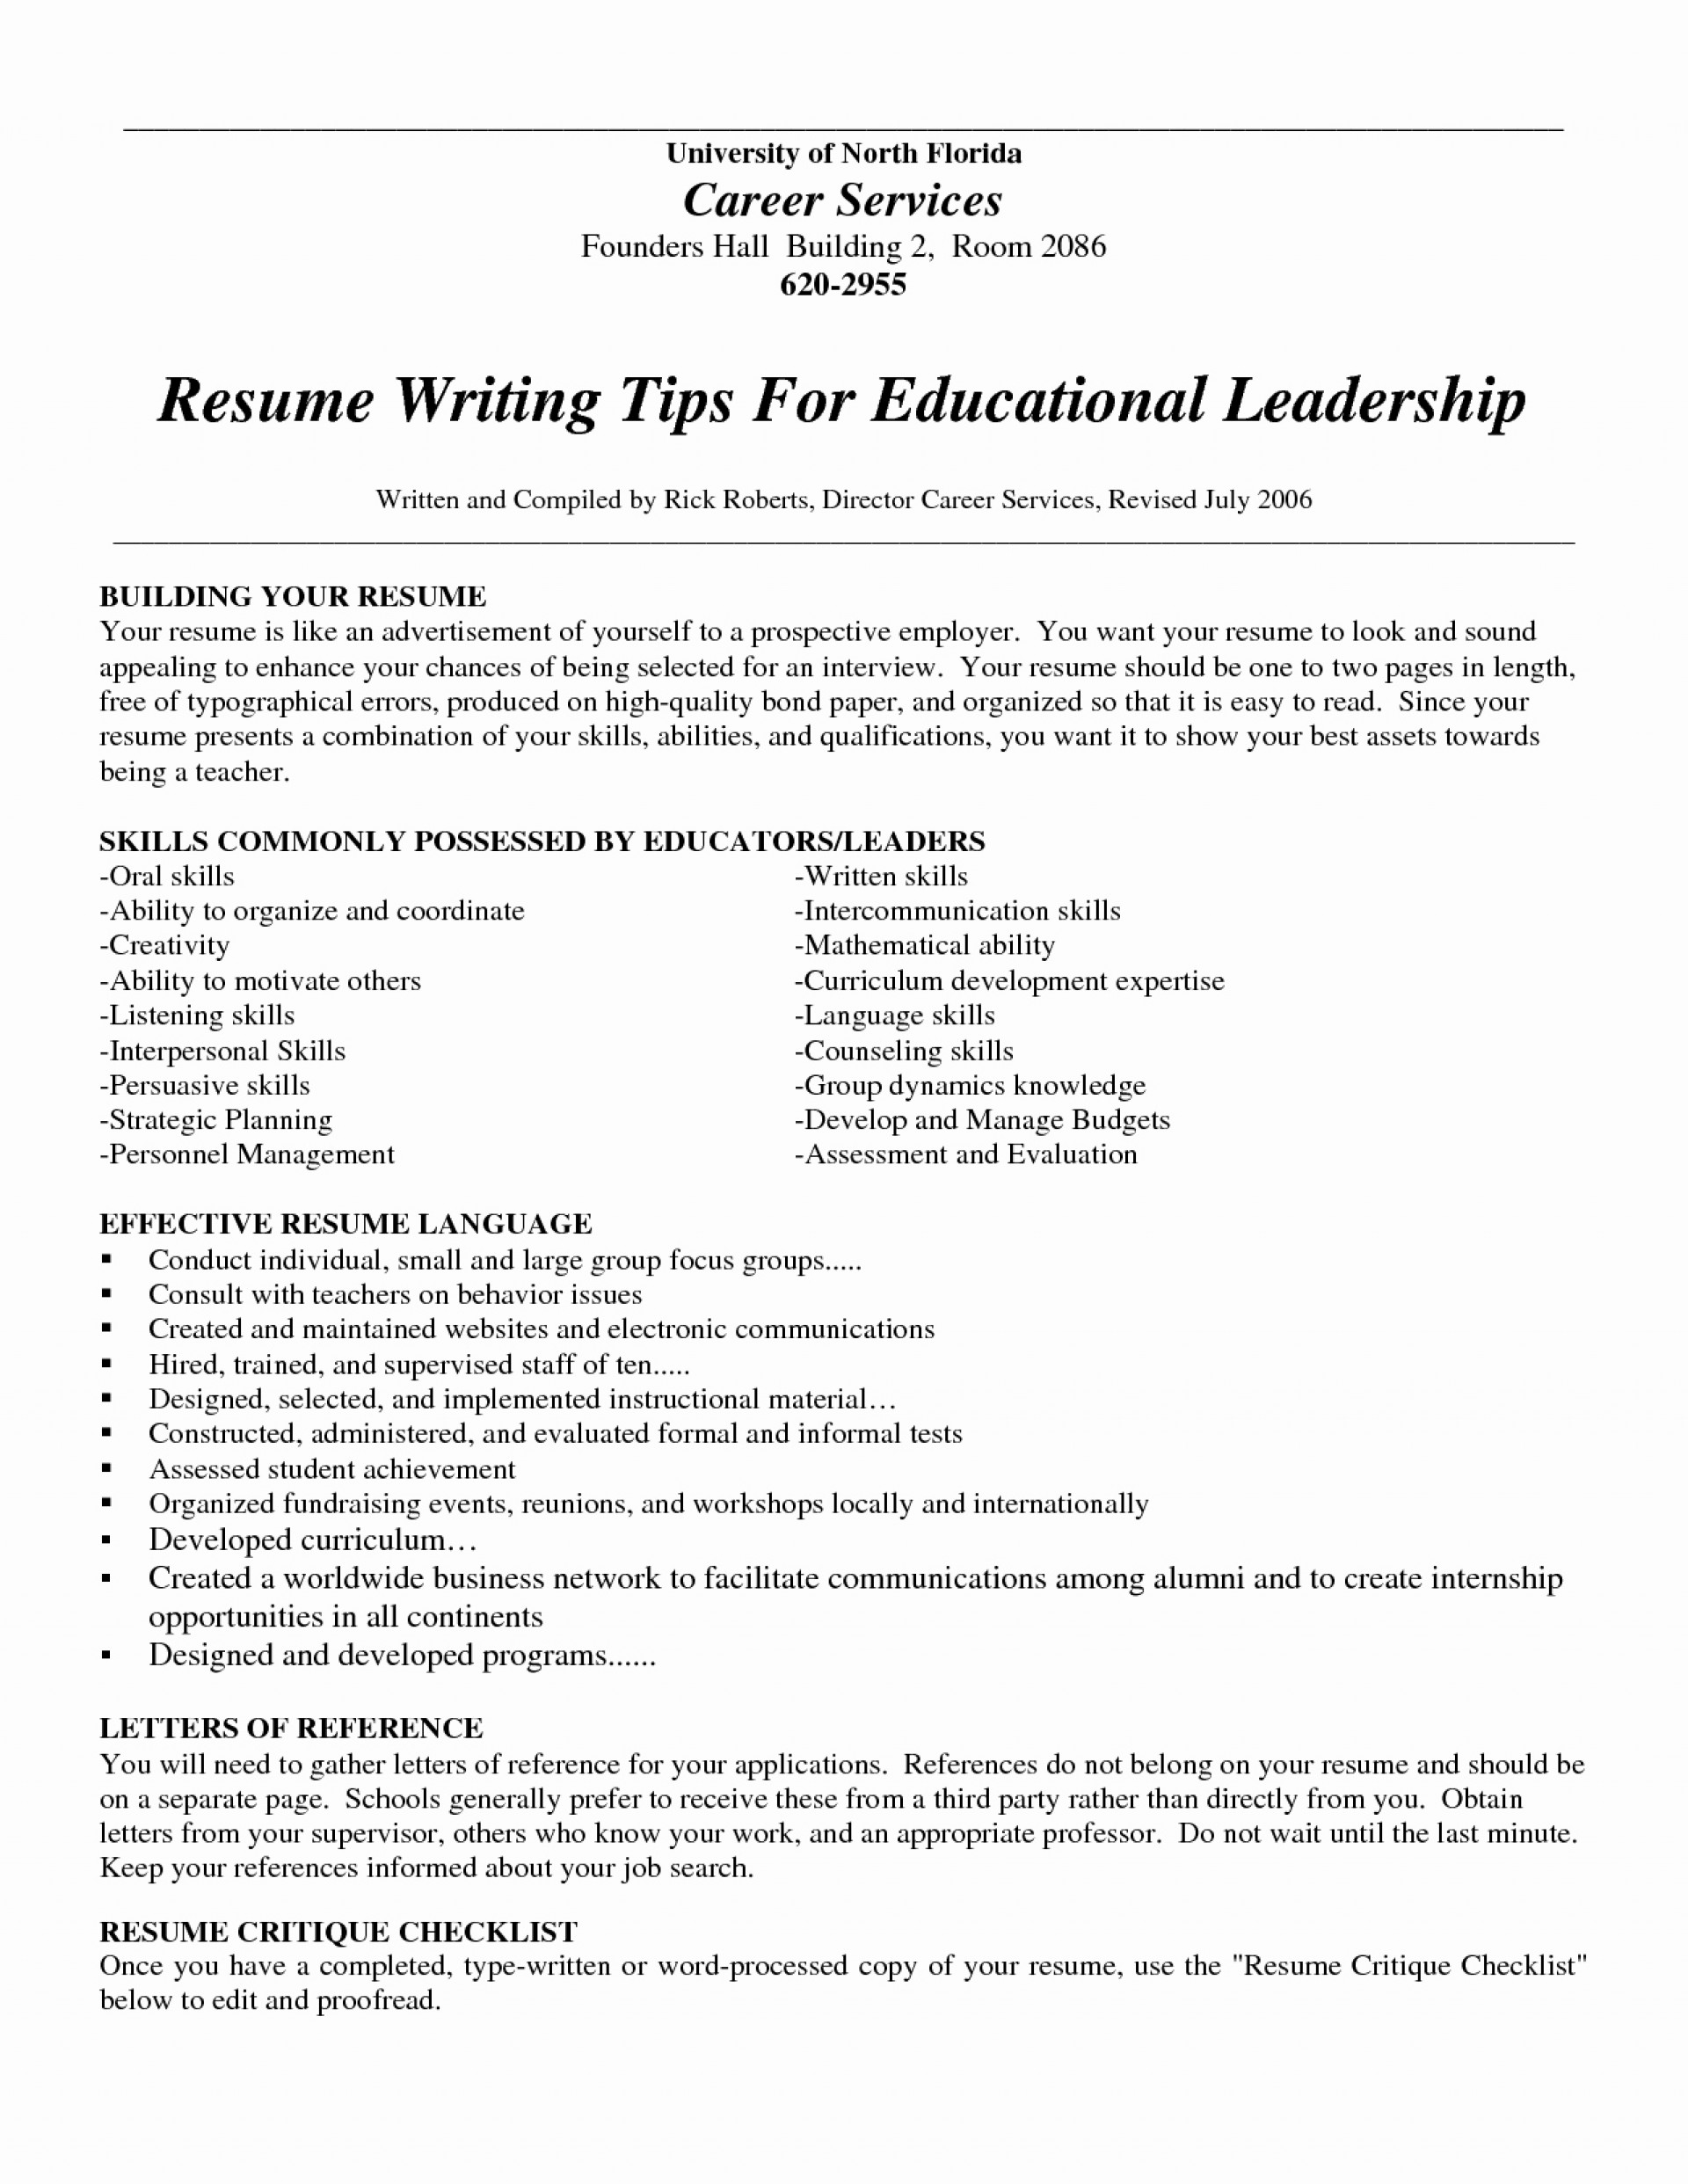 002 Essay Professor Resume Format For Assistant Job Awesome Pro Life On College Indent Cultur Writing Amazing Teaching My In French 1920